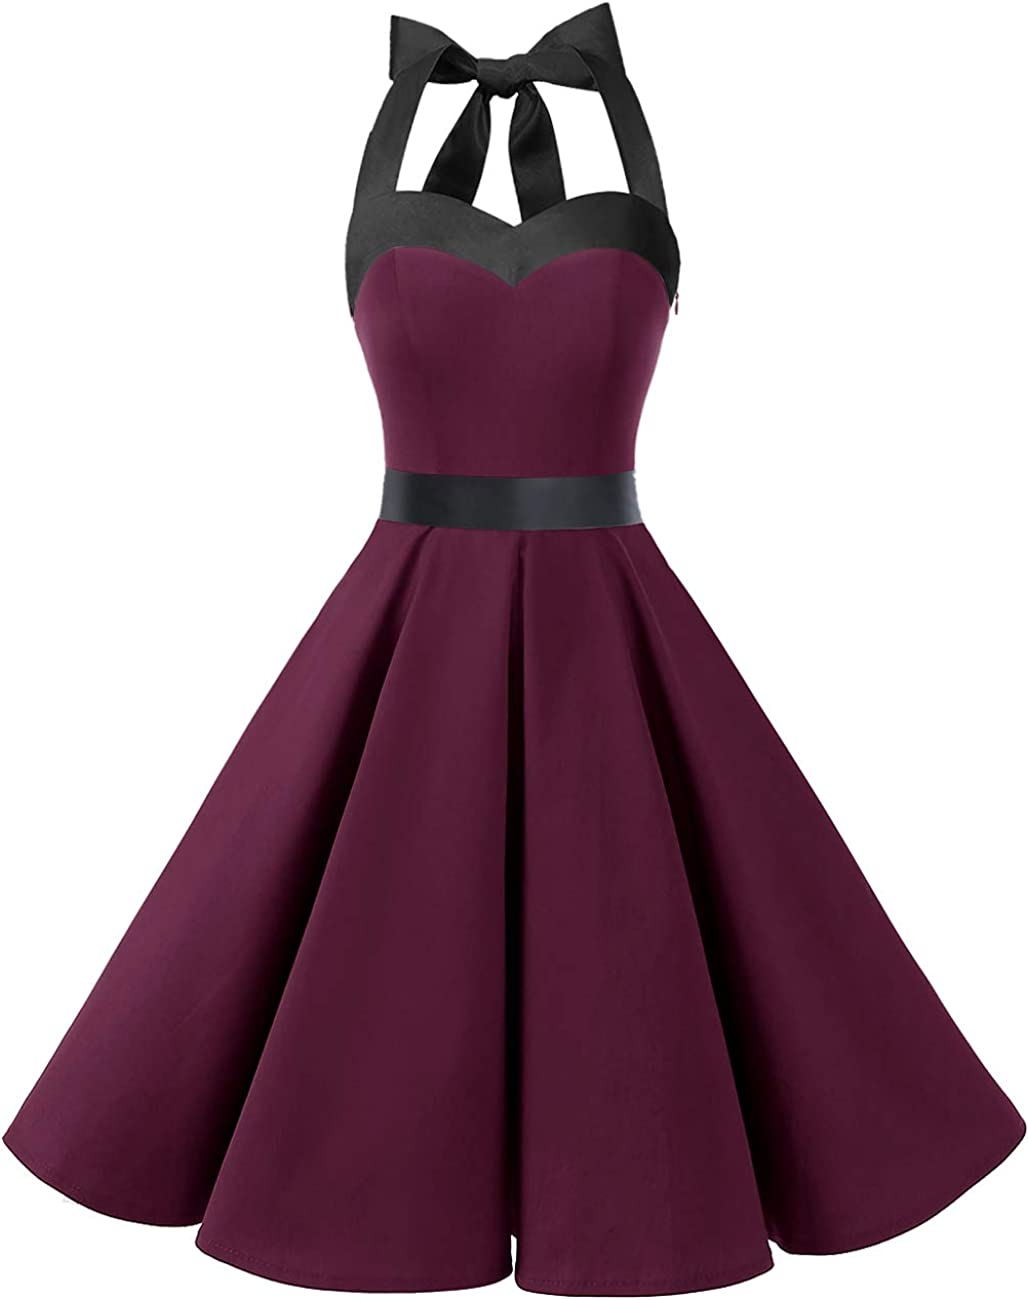 TALLA L. Dresstells® Halter 50s Rockabilly Polka Dots Audrey Dress Retro Cocktail Dress Burgundy Black L